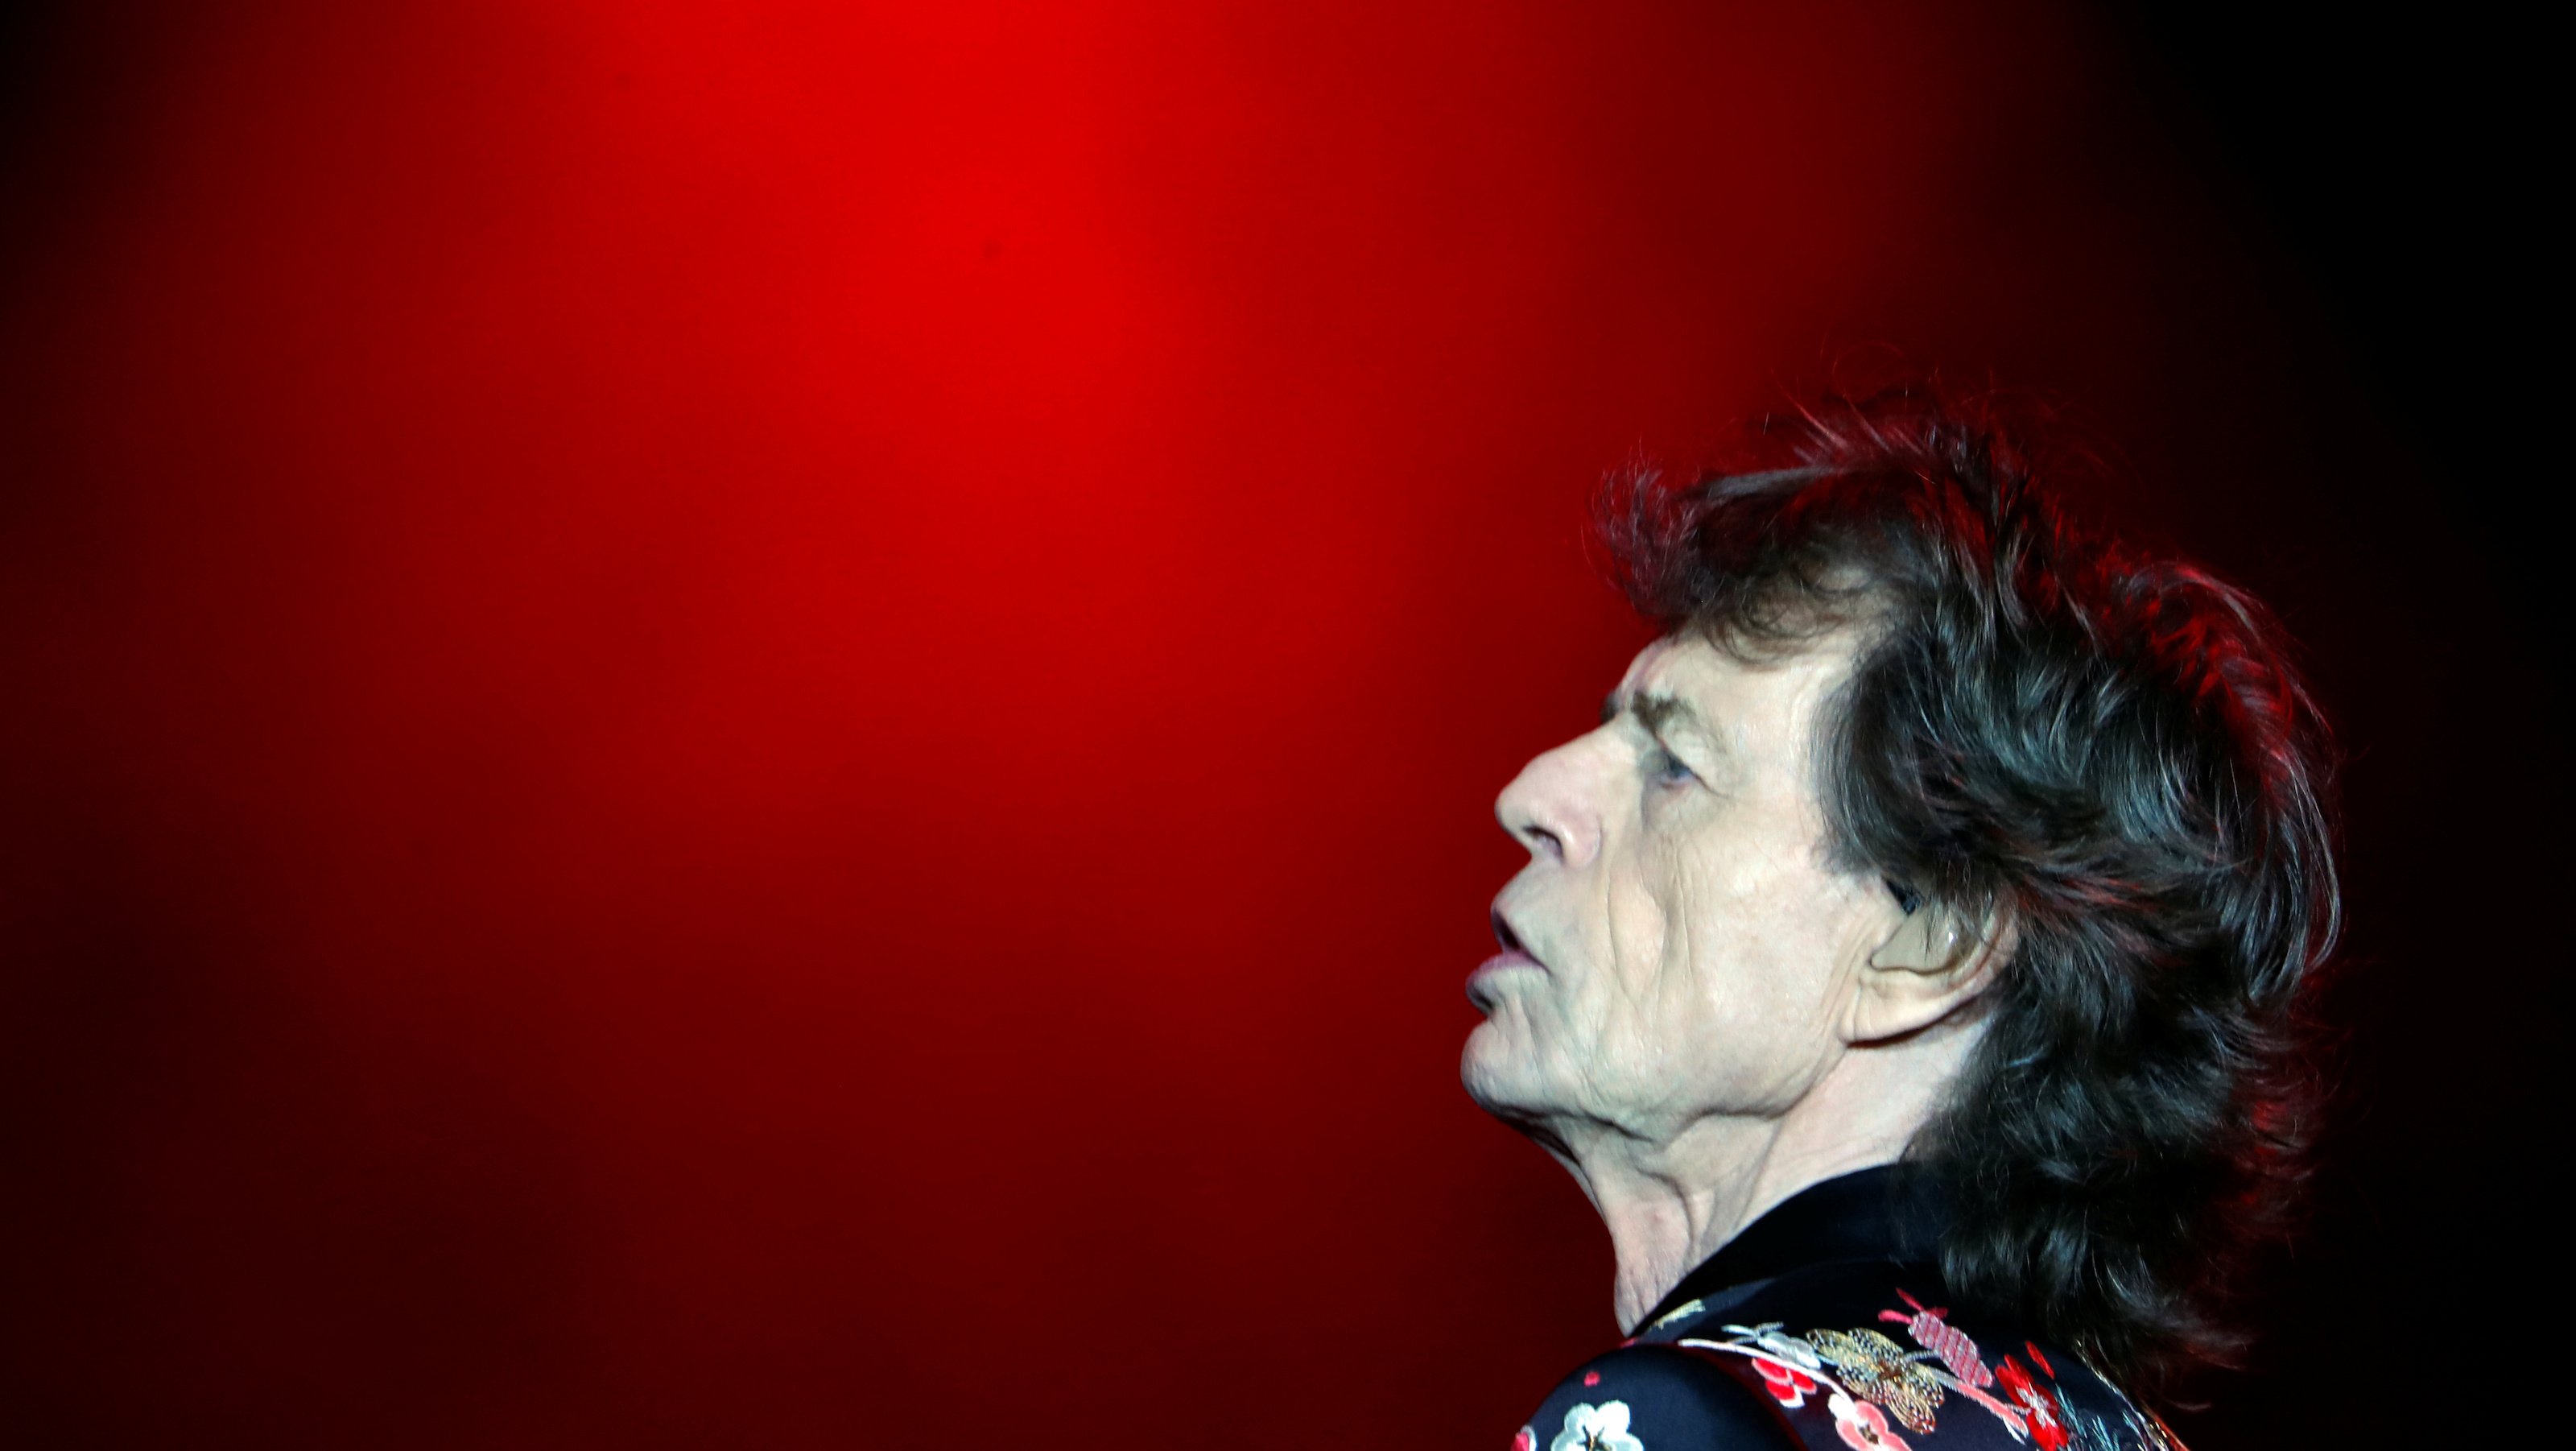 """Mick Jagger of the Rolling Stones performs during a concert of their """"No Filter"""" European tour at the new U Arena stadium in Nanterre near Paris, France, October 19, 2017. REUTERS/Charles Platiau - RC138E8F2CE0"""